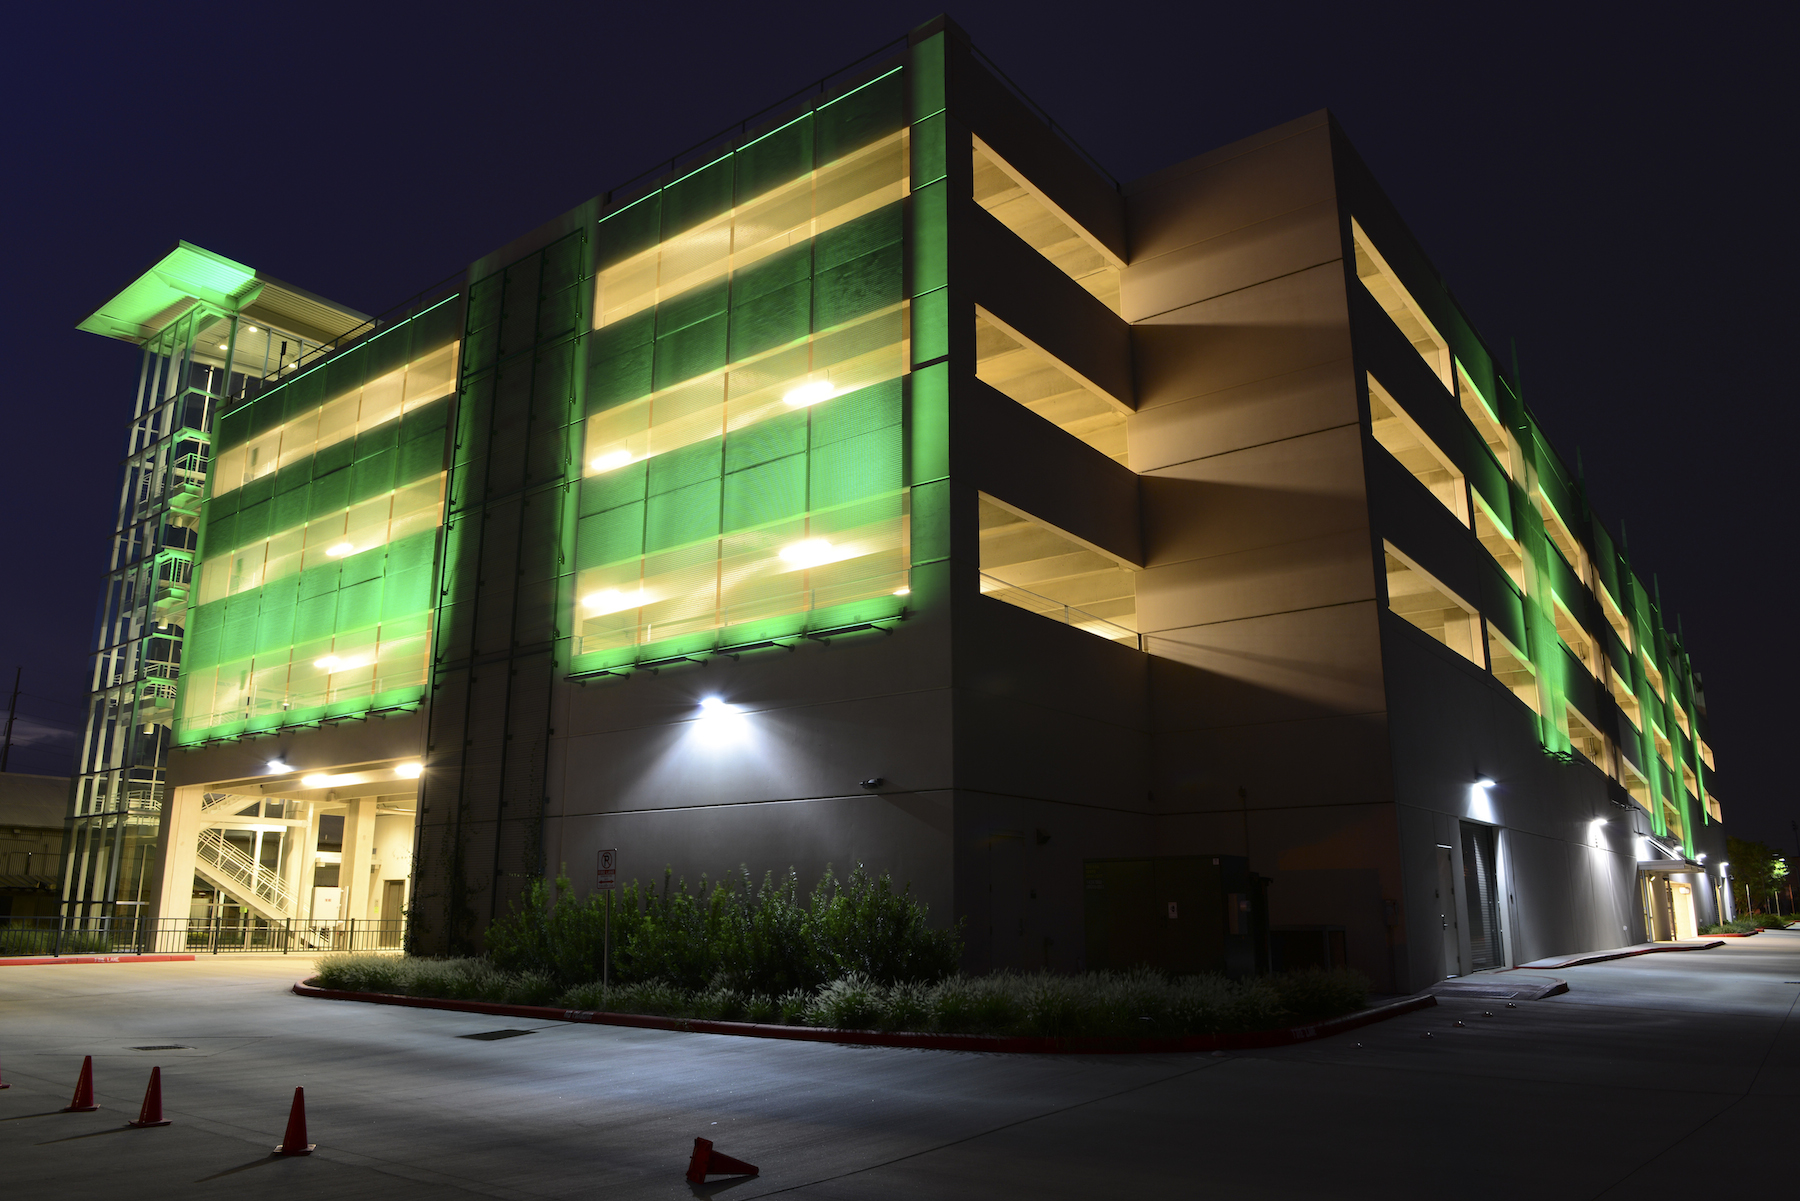 Architectural Mesh Transforms Exterior Parking Facades in Projects from Manitoba to Mississippi